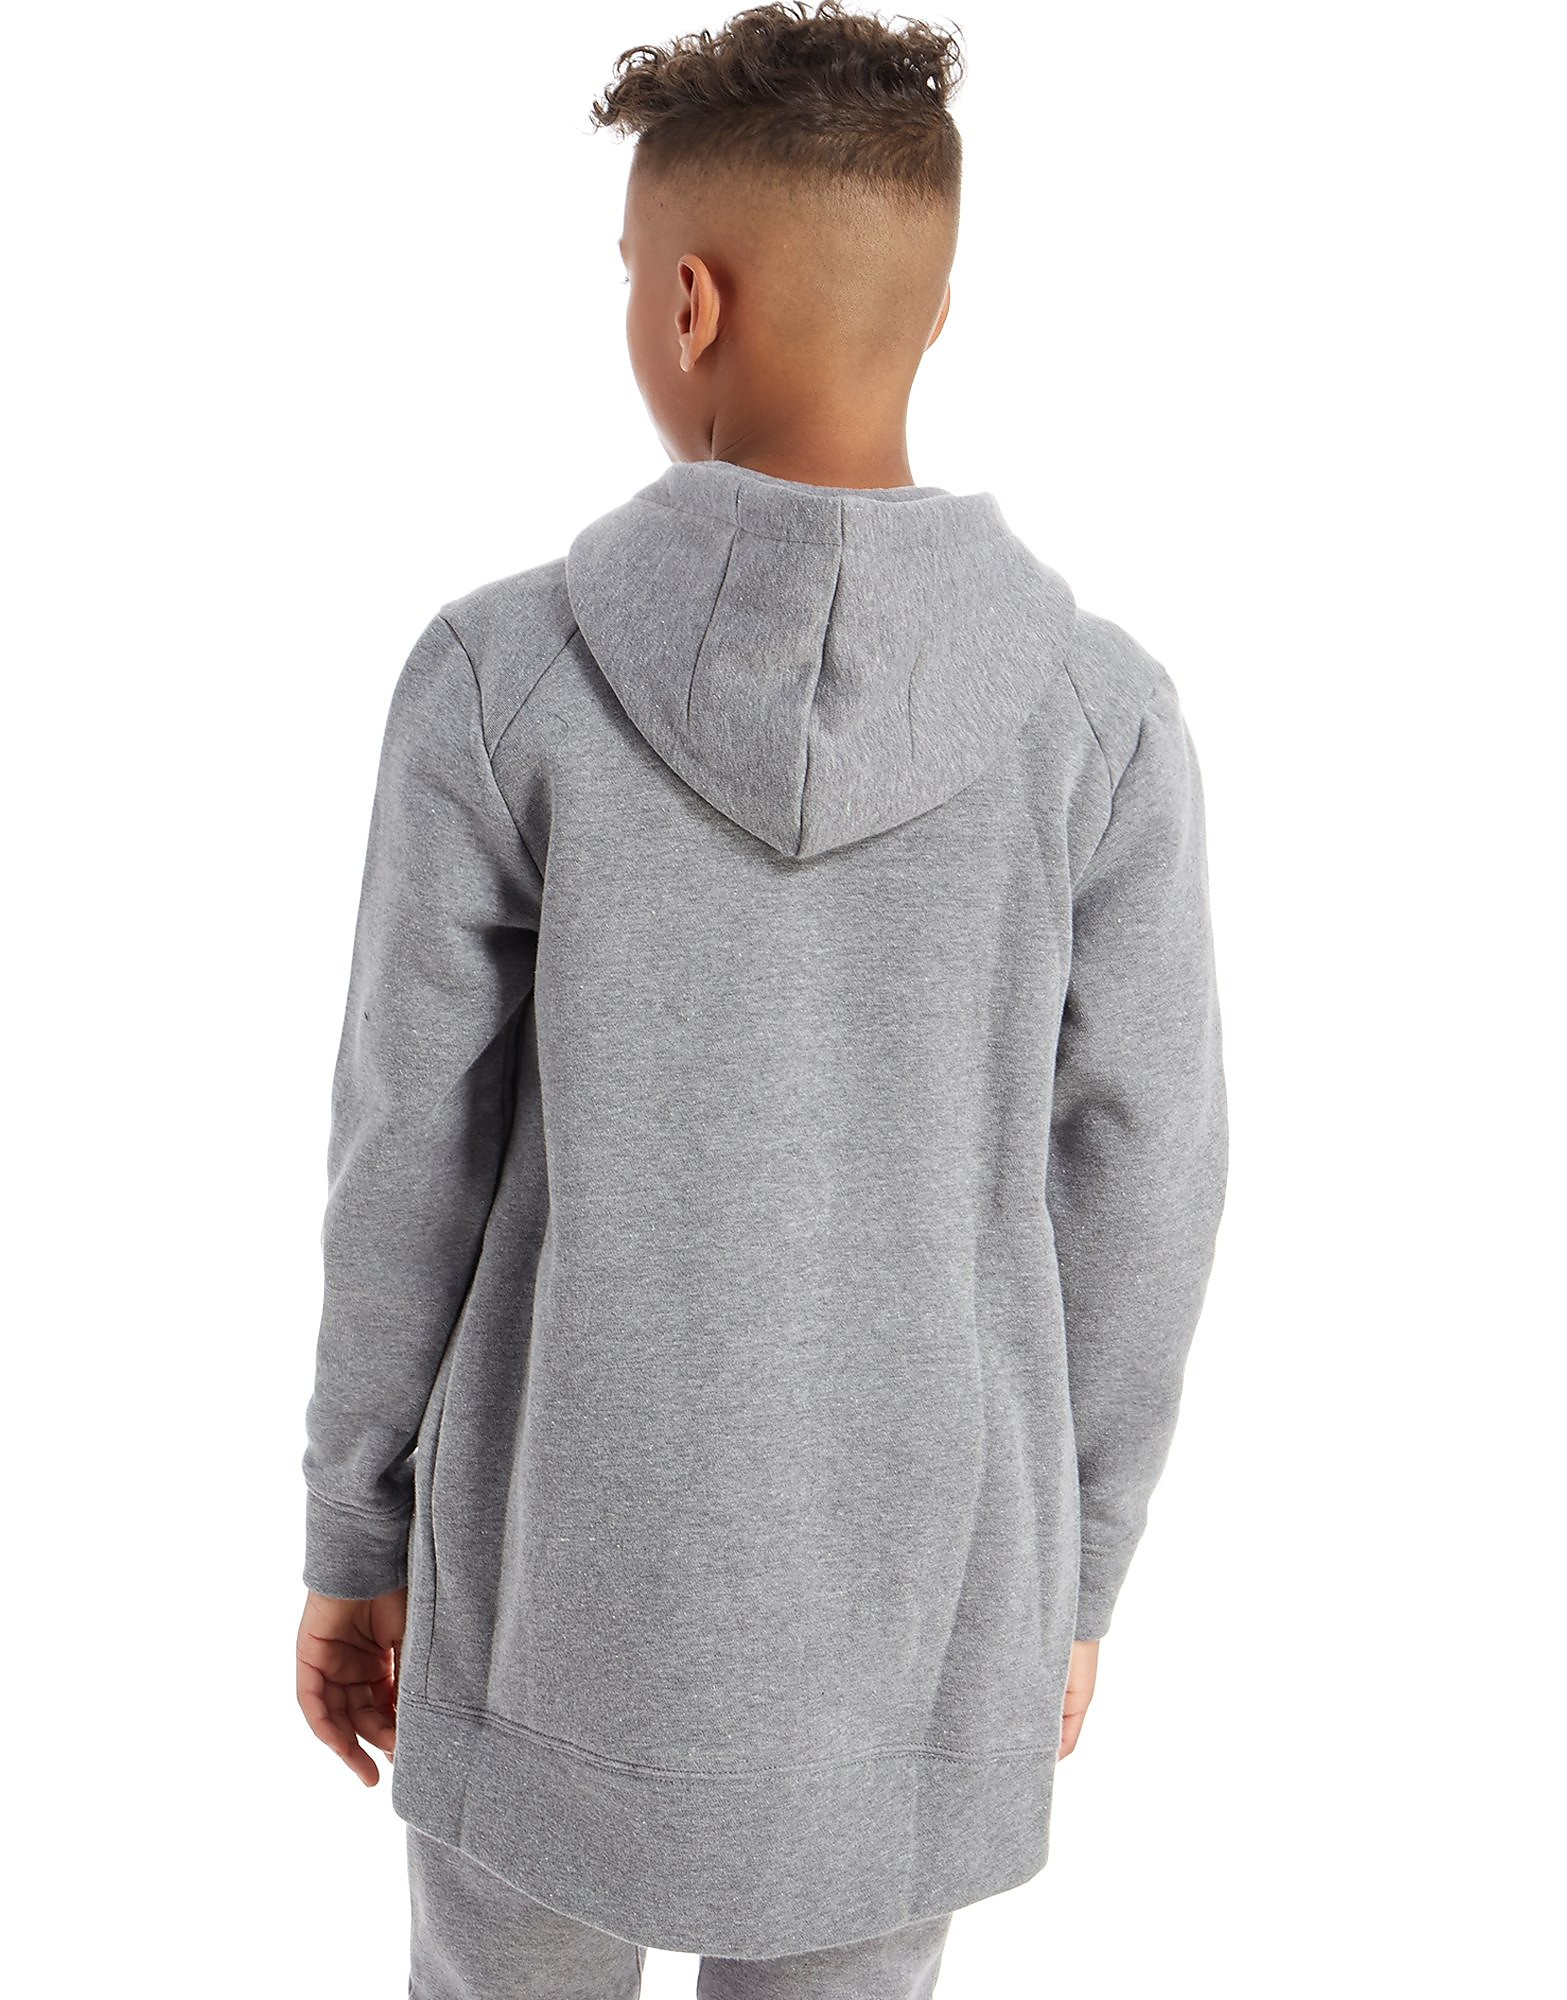 Jordan Jordan Jumpman Full Zip Hoodie Junior